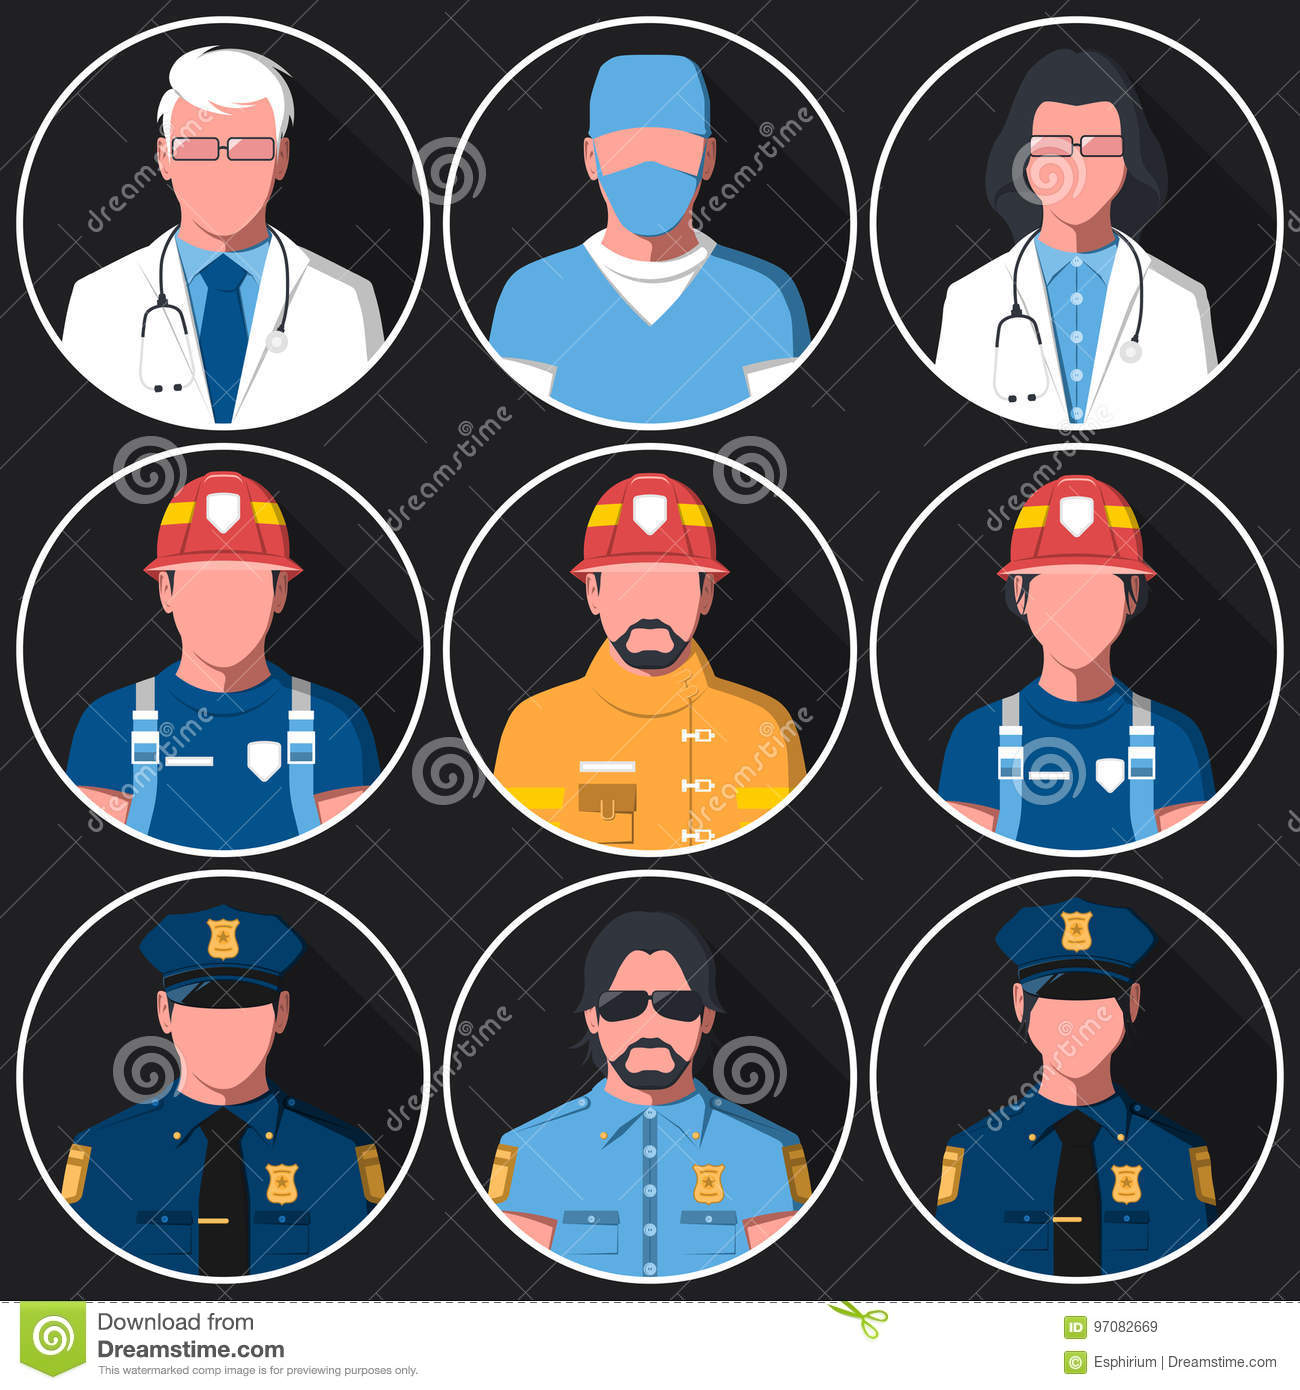 Set of flat round avatars of medical, fire and police services